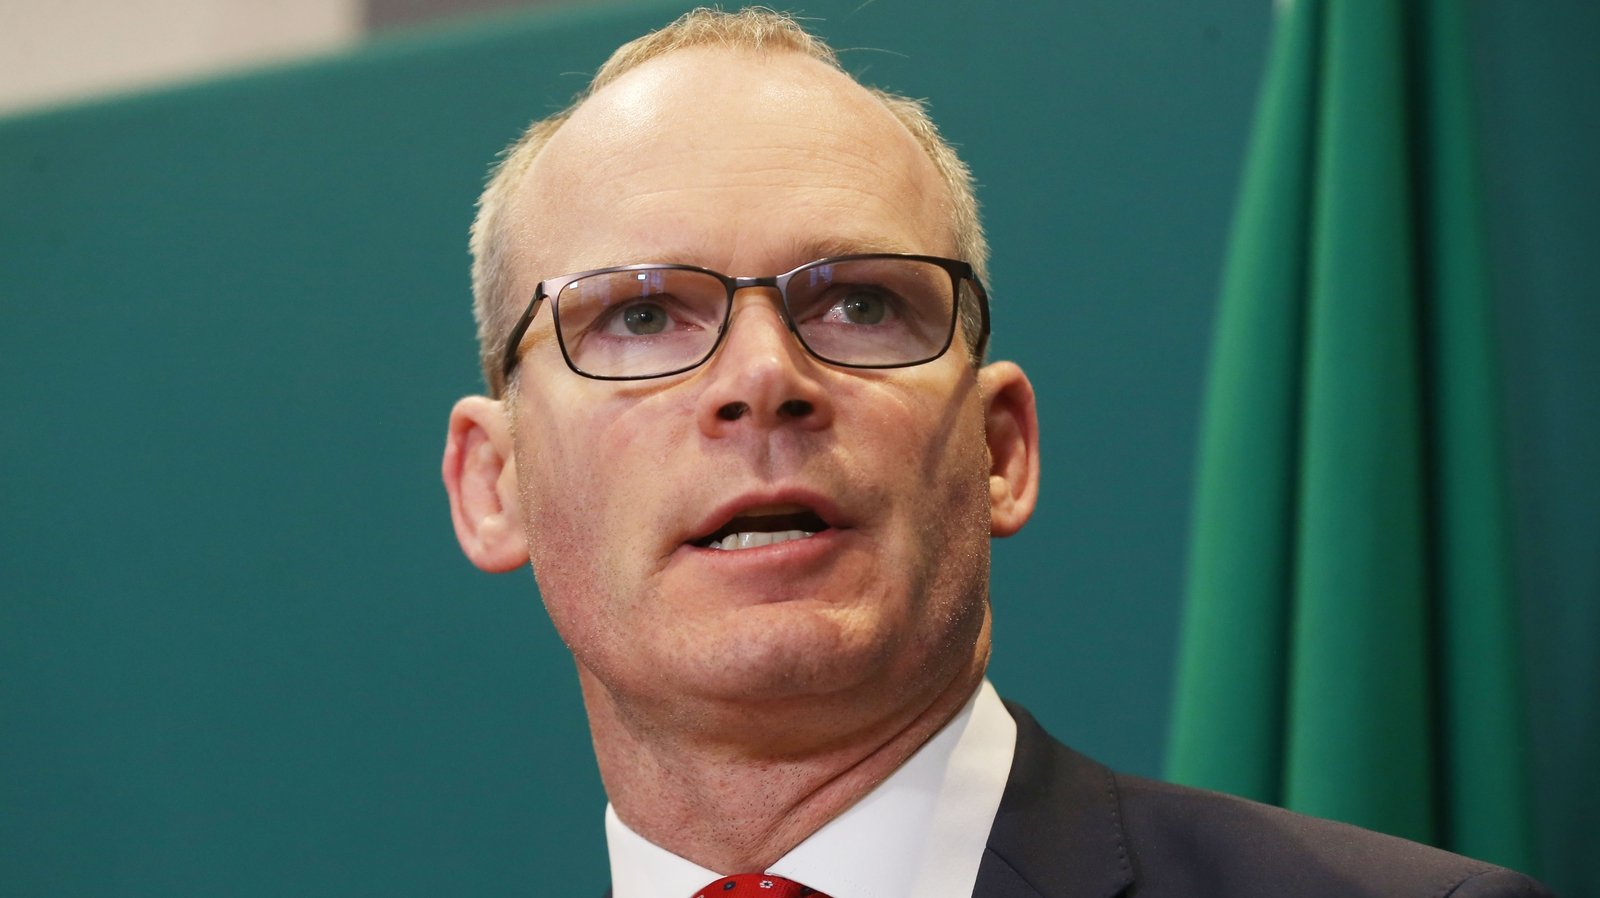 'Real consequences' to paying ransom - Coveney